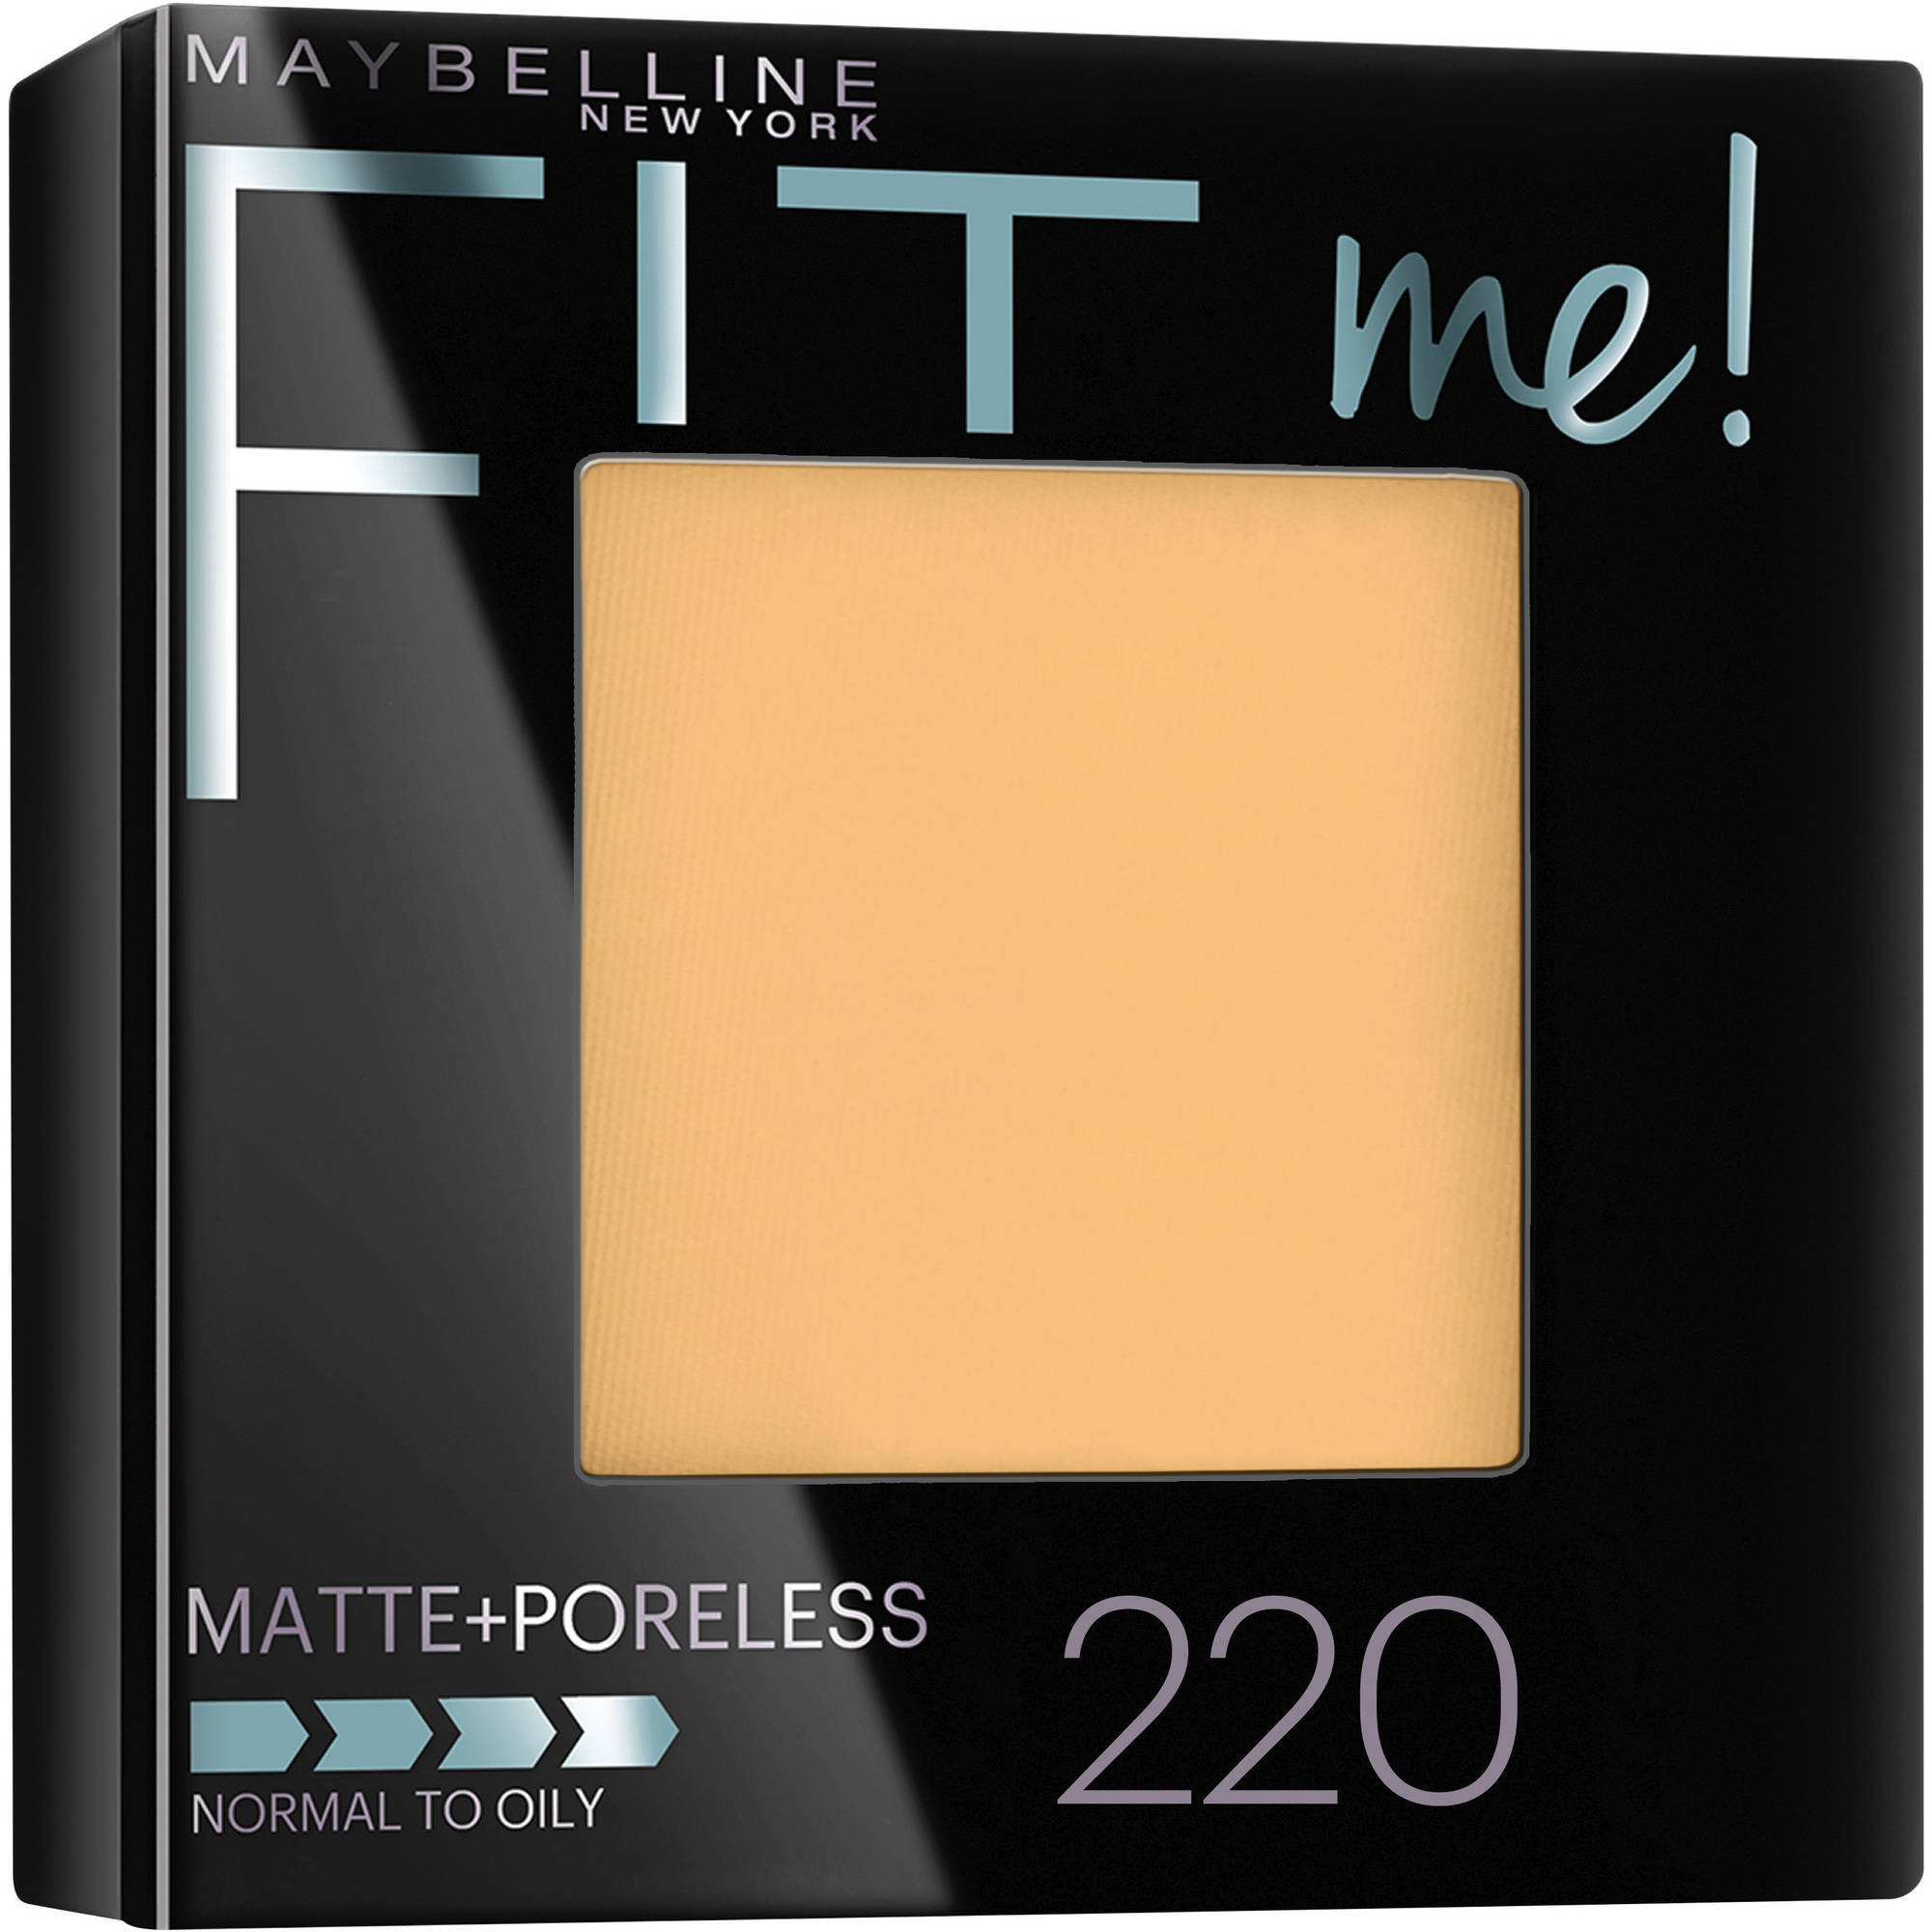 Maybelline New York Fit Me! Matte + Poreless Foundation Powder, 220 Natural Beige